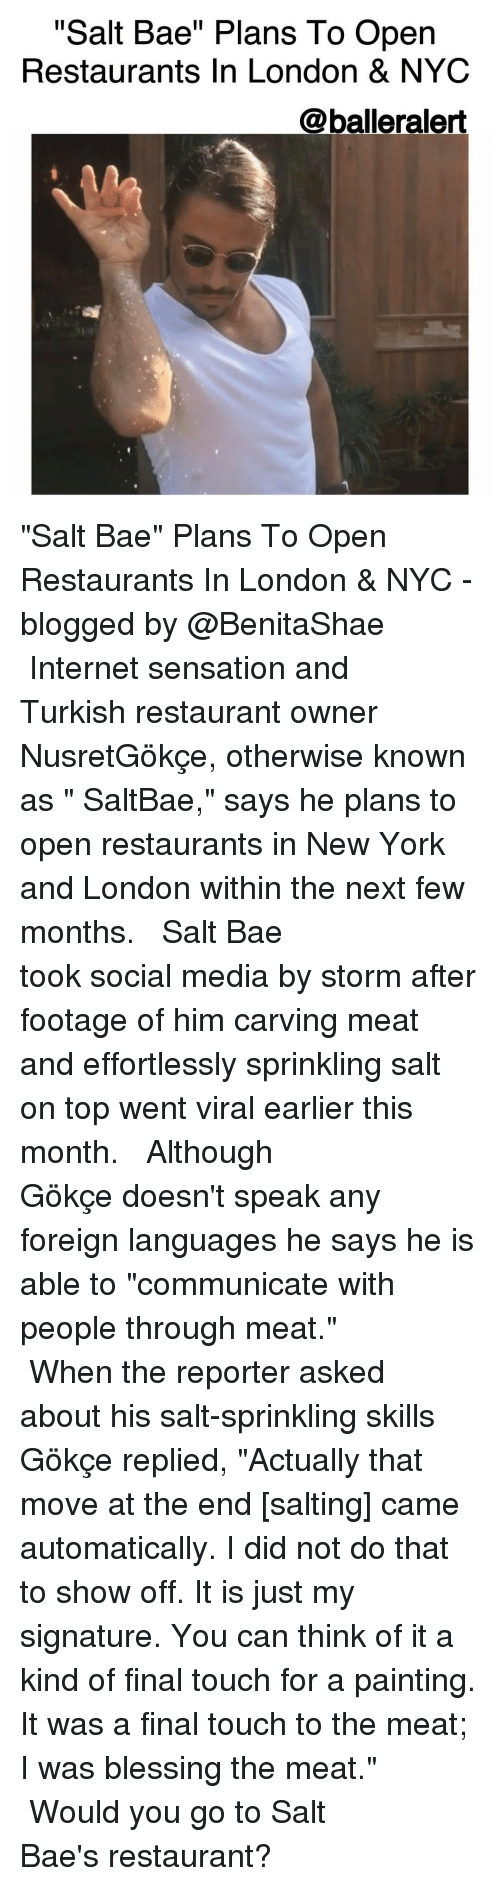 "sensationalism: ""Salt Bae"" Plans To Open  Restaurants In London & NYC  @balleralert ""Salt Bae"" Plans To Open Restaurants In London & NYC -blogged by @BenitaShae ⠀⠀⠀⠀⠀⠀⠀⠀⠀ ⠀⠀⠀⠀⠀⠀⠀⠀⠀ Internet sensation and Turkish restaurant owner NusretGökçe, otherwise known as "" SaltBae,"" says he plans to open restaurants in New York and London within the next few months. ⠀⠀⠀⠀⠀⠀⠀⠀⠀ ⠀⠀⠀⠀⠀⠀⠀⠀⠀ Salt Bae took social media by storm after footage of him carving meat and effortlessly sprinkling salt on top went viral earlier this month. ⠀⠀⠀⠀⠀⠀⠀⠀⠀ ⠀⠀⠀⠀⠀⠀⠀⠀⠀ Although Gökçe doesn't speak any foreign languages he says he is able to ""communicate with people through meat."" ⠀⠀⠀⠀⠀⠀⠀⠀⠀ ⠀⠀⠀⠀⠀⠀⠀⠀⠀ When the reporter asked about his salt-sprinkling skills Gökçe replied, ""Actually that move at the end [salting] came automatically. I did not do that to show off. It is just my signature. You can think of it a kind of final touch for a painting. It was a final touch to the meat; I was blessing the meat."" ⠀⠀⠀⠀⠀⠀⠀⠀⠀ ⠀⠀⠀⠀⠀⠀⠀⠀⠀ Would you go to Salt Bae's restaurant?"